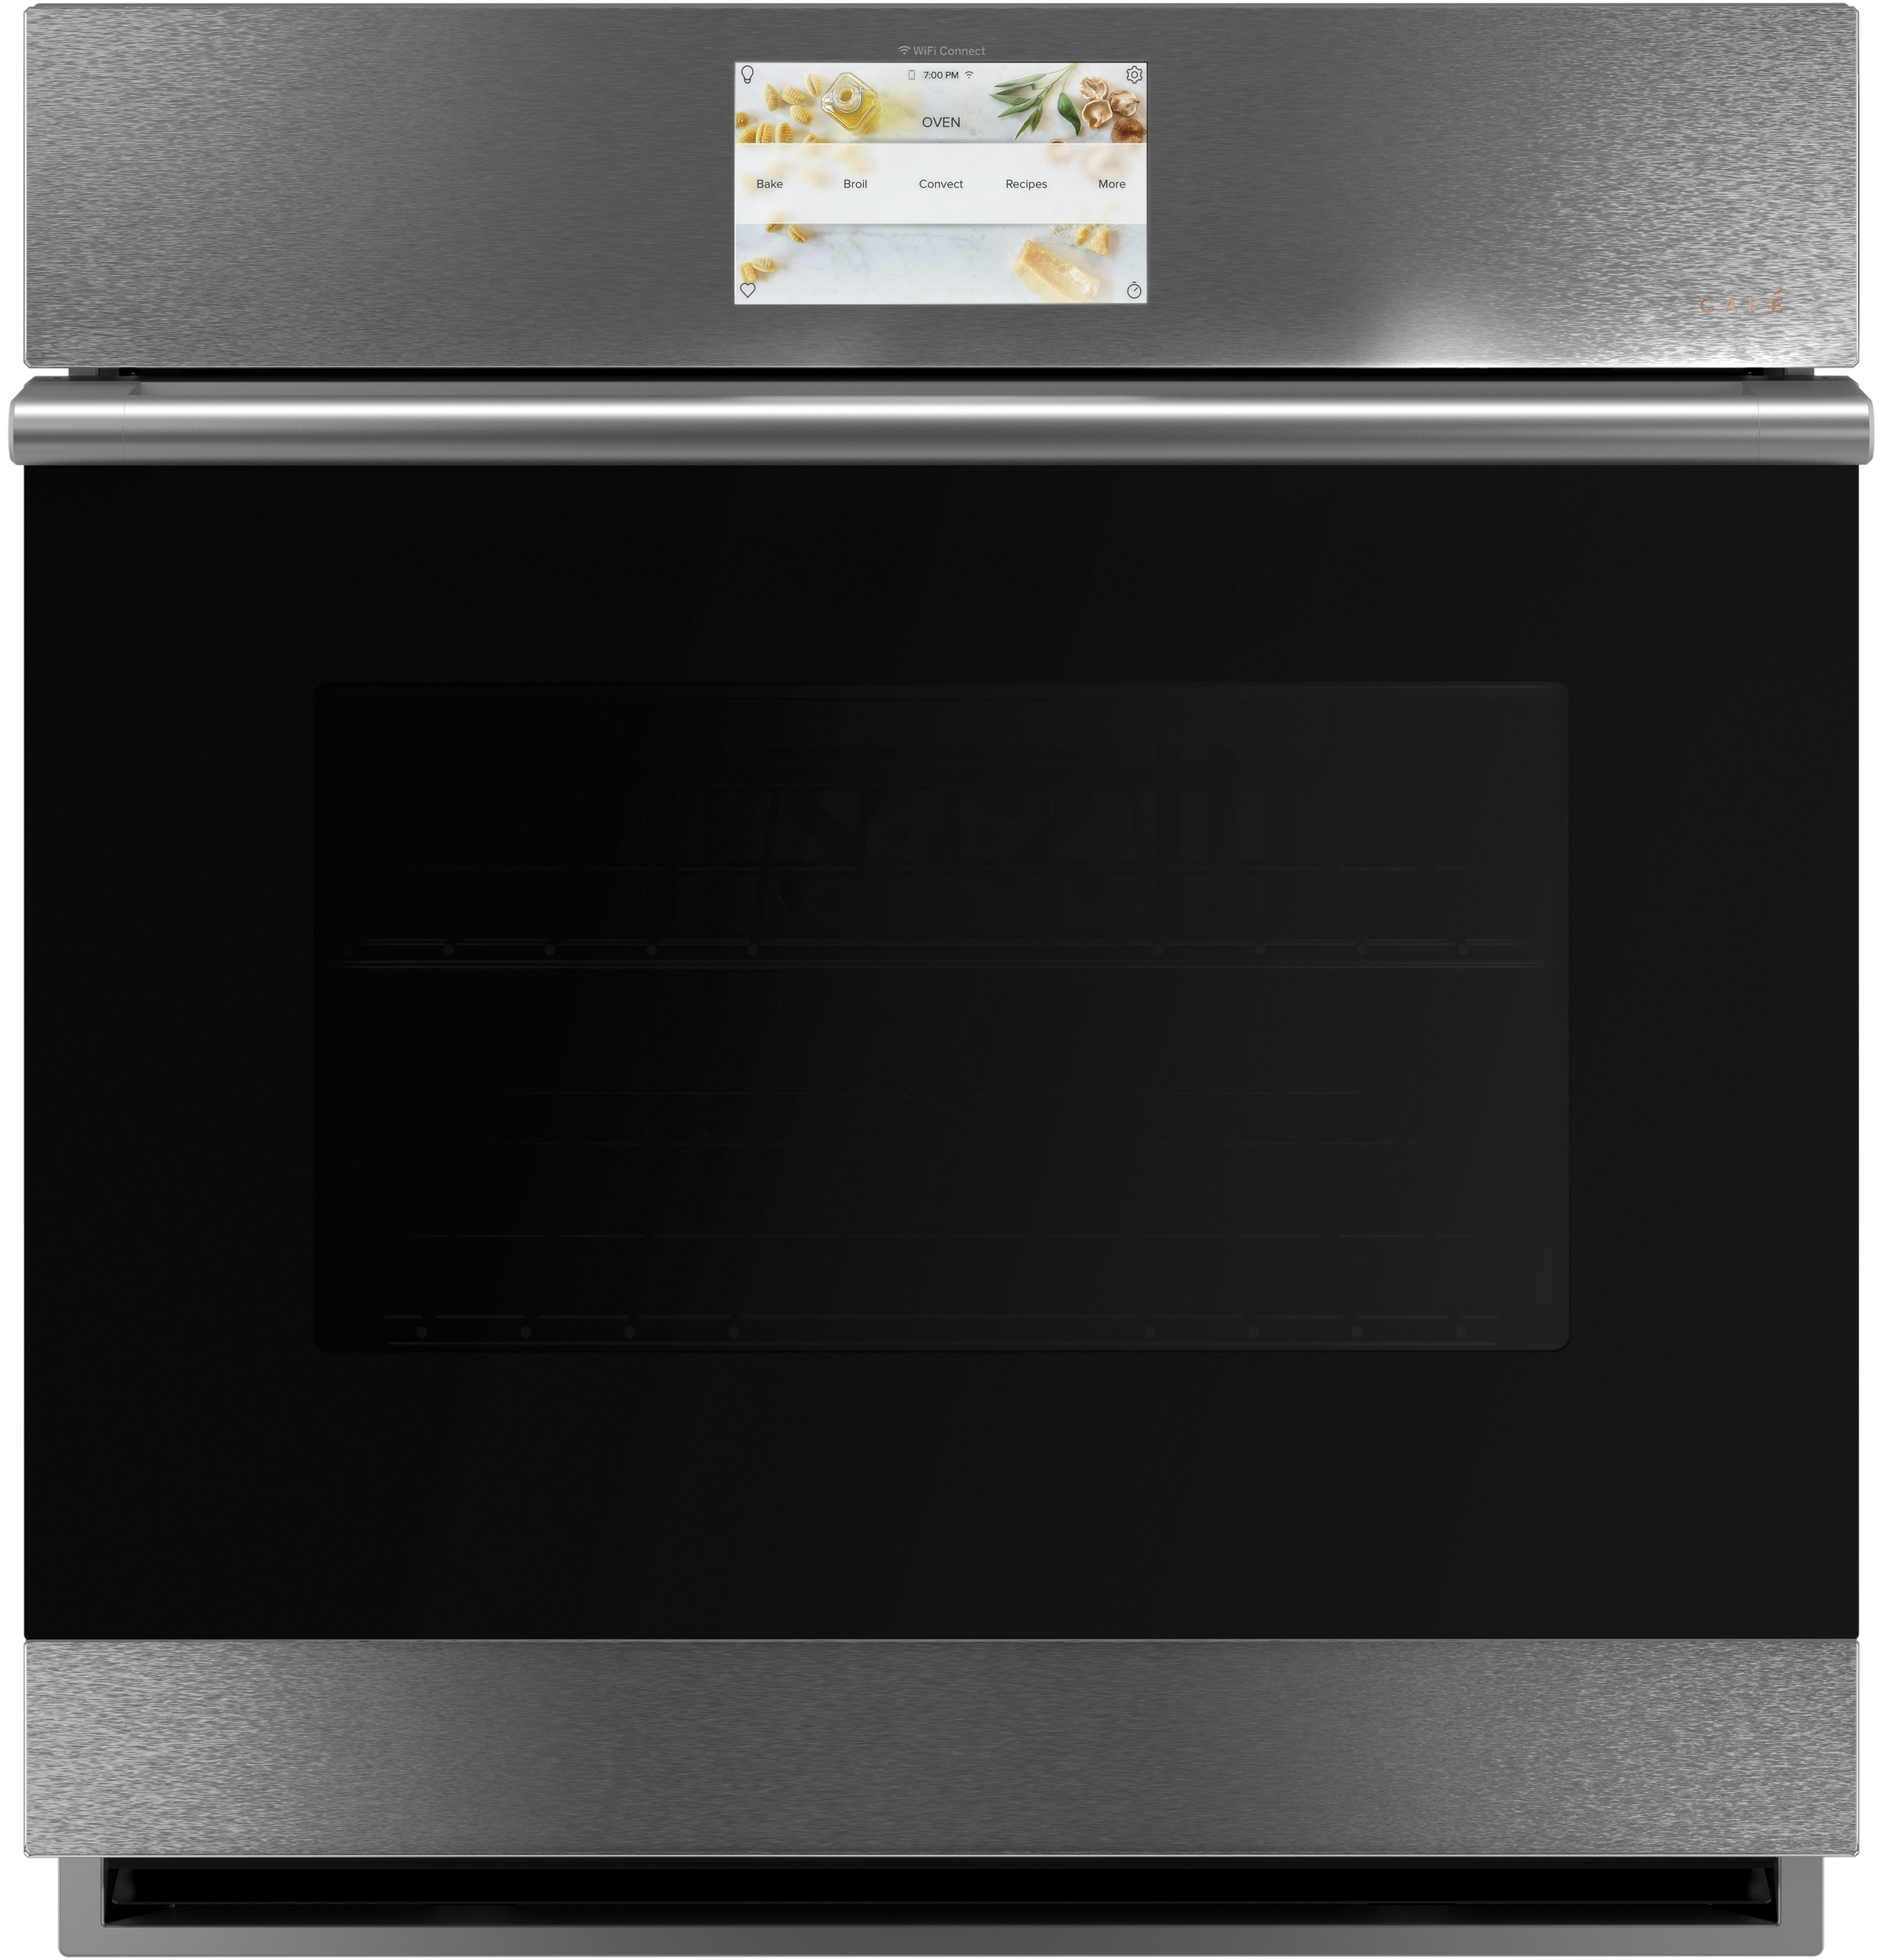 "Cafe Café™ 27"" Smart Single Wall Oven with Convection in Platinum Glass"